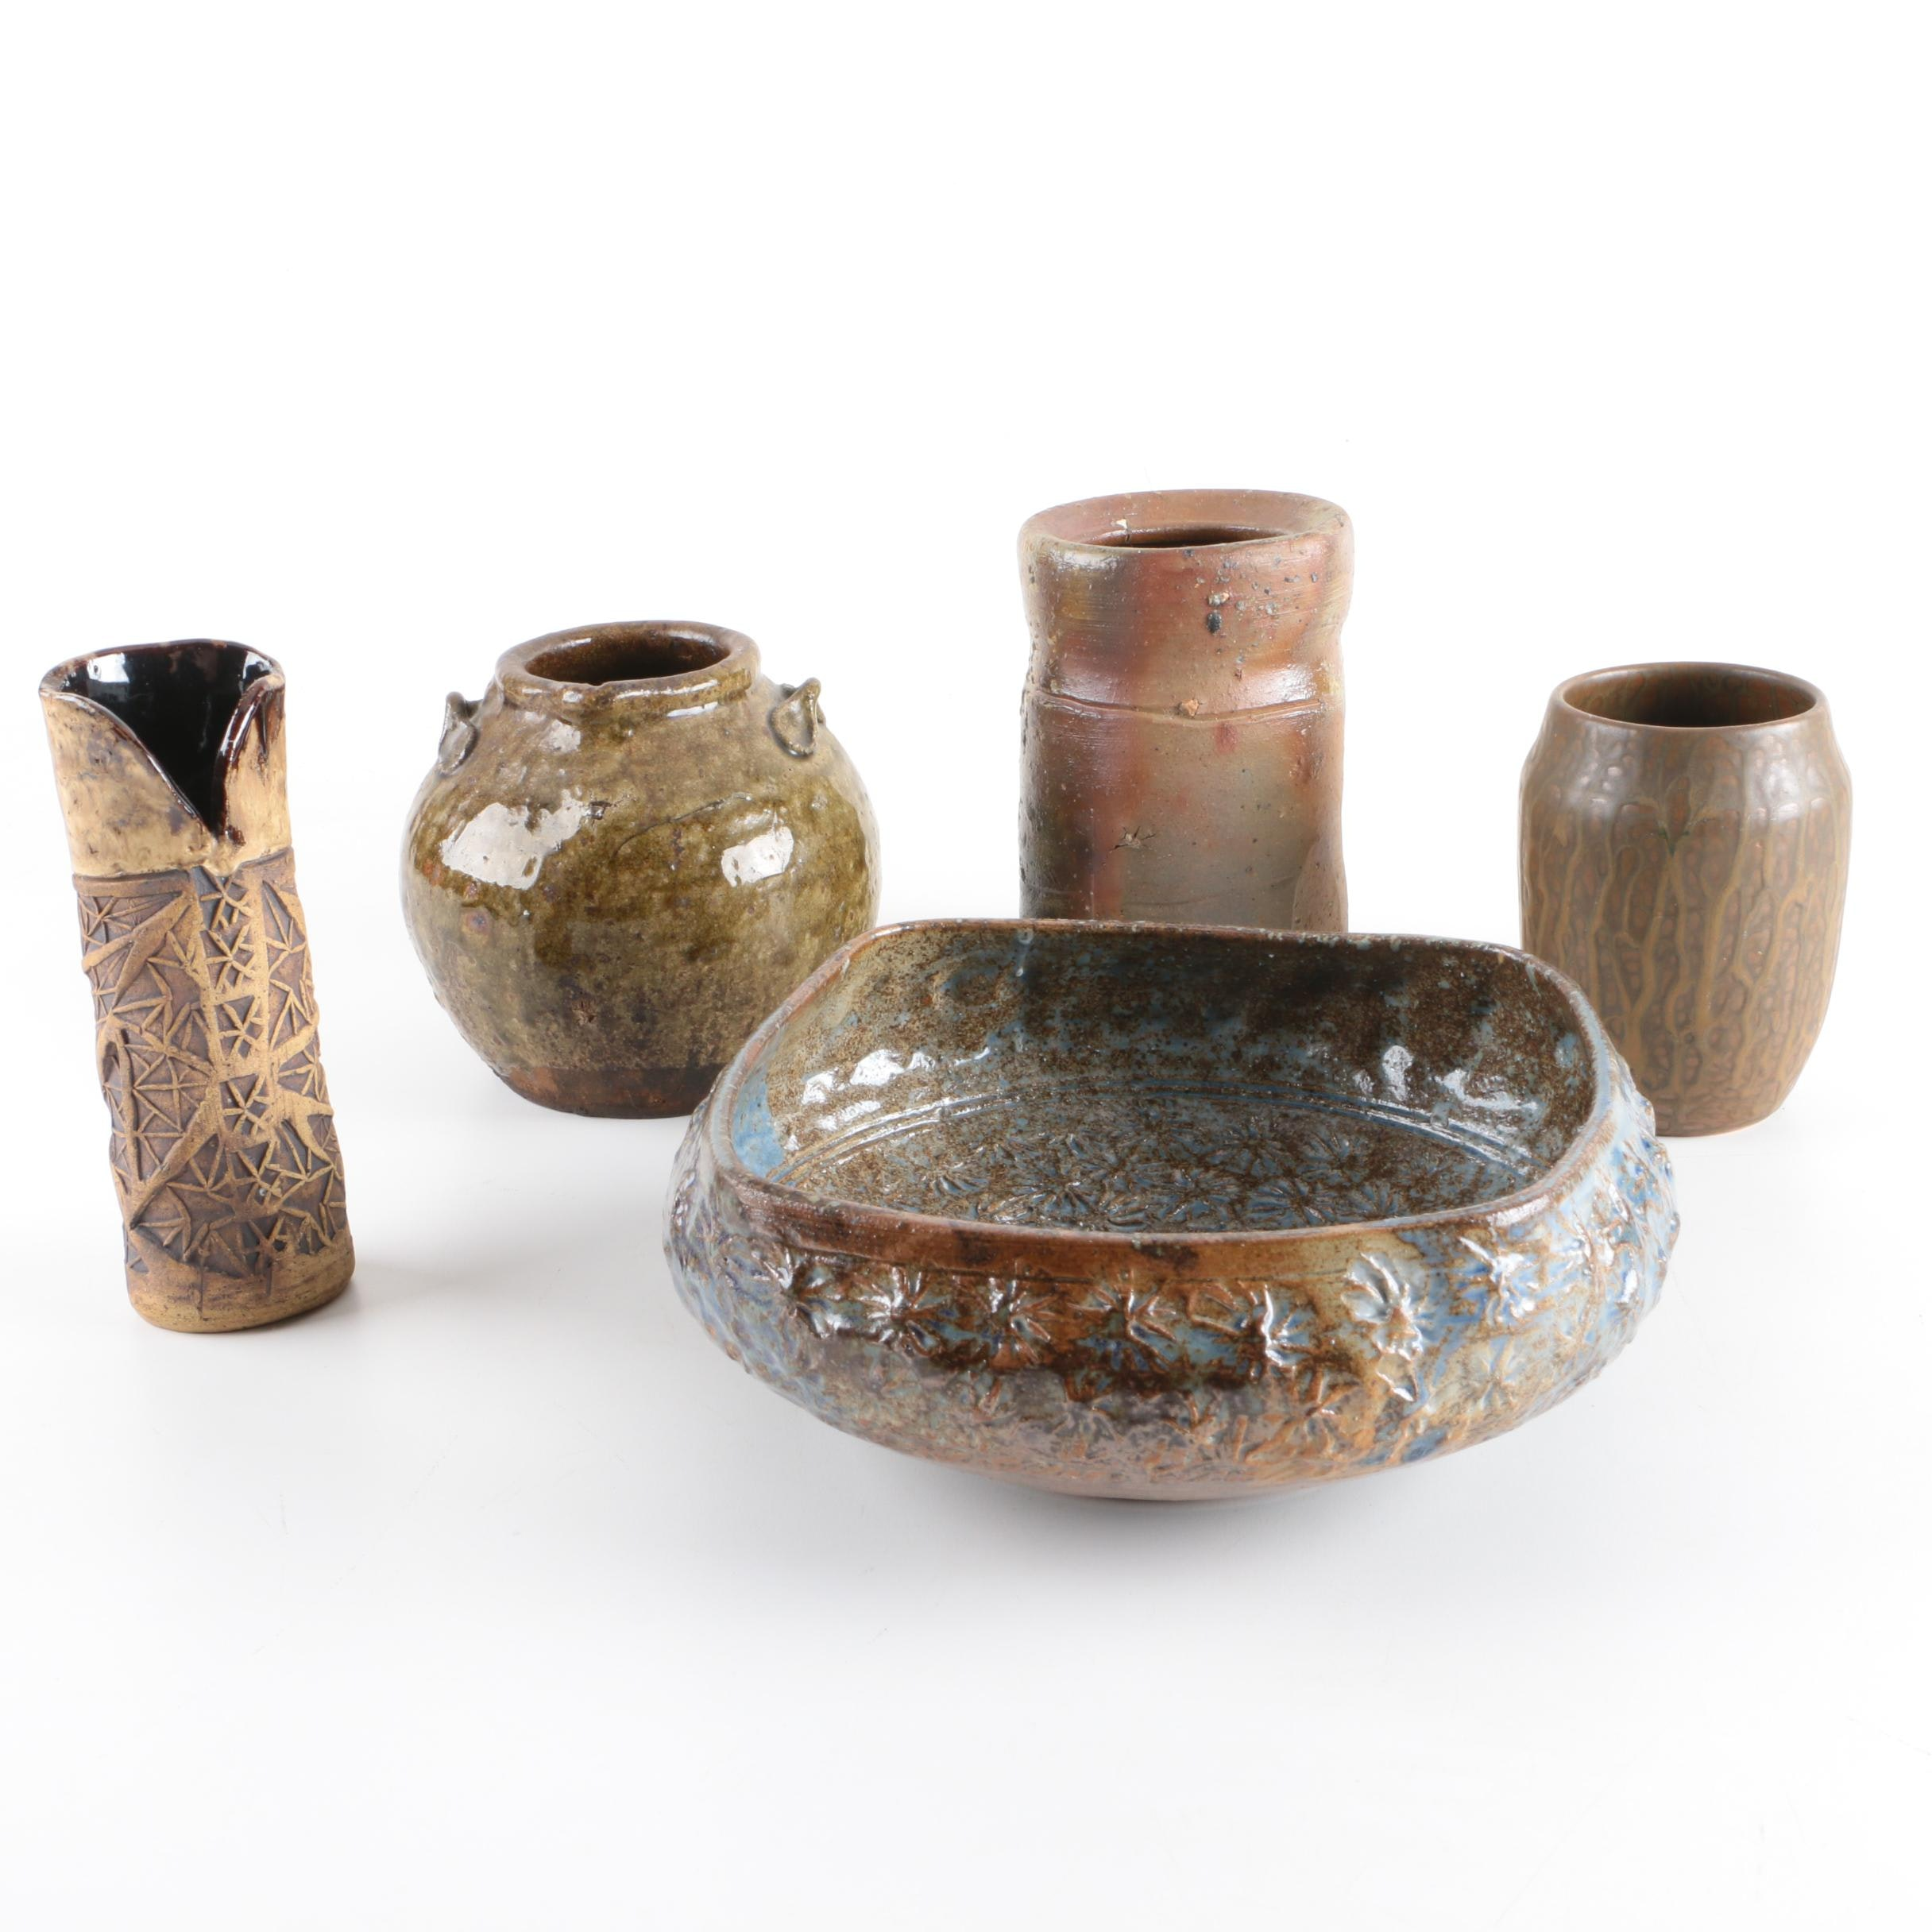 Art Pottery Vases and Bowl Featuring D.X. Gordy